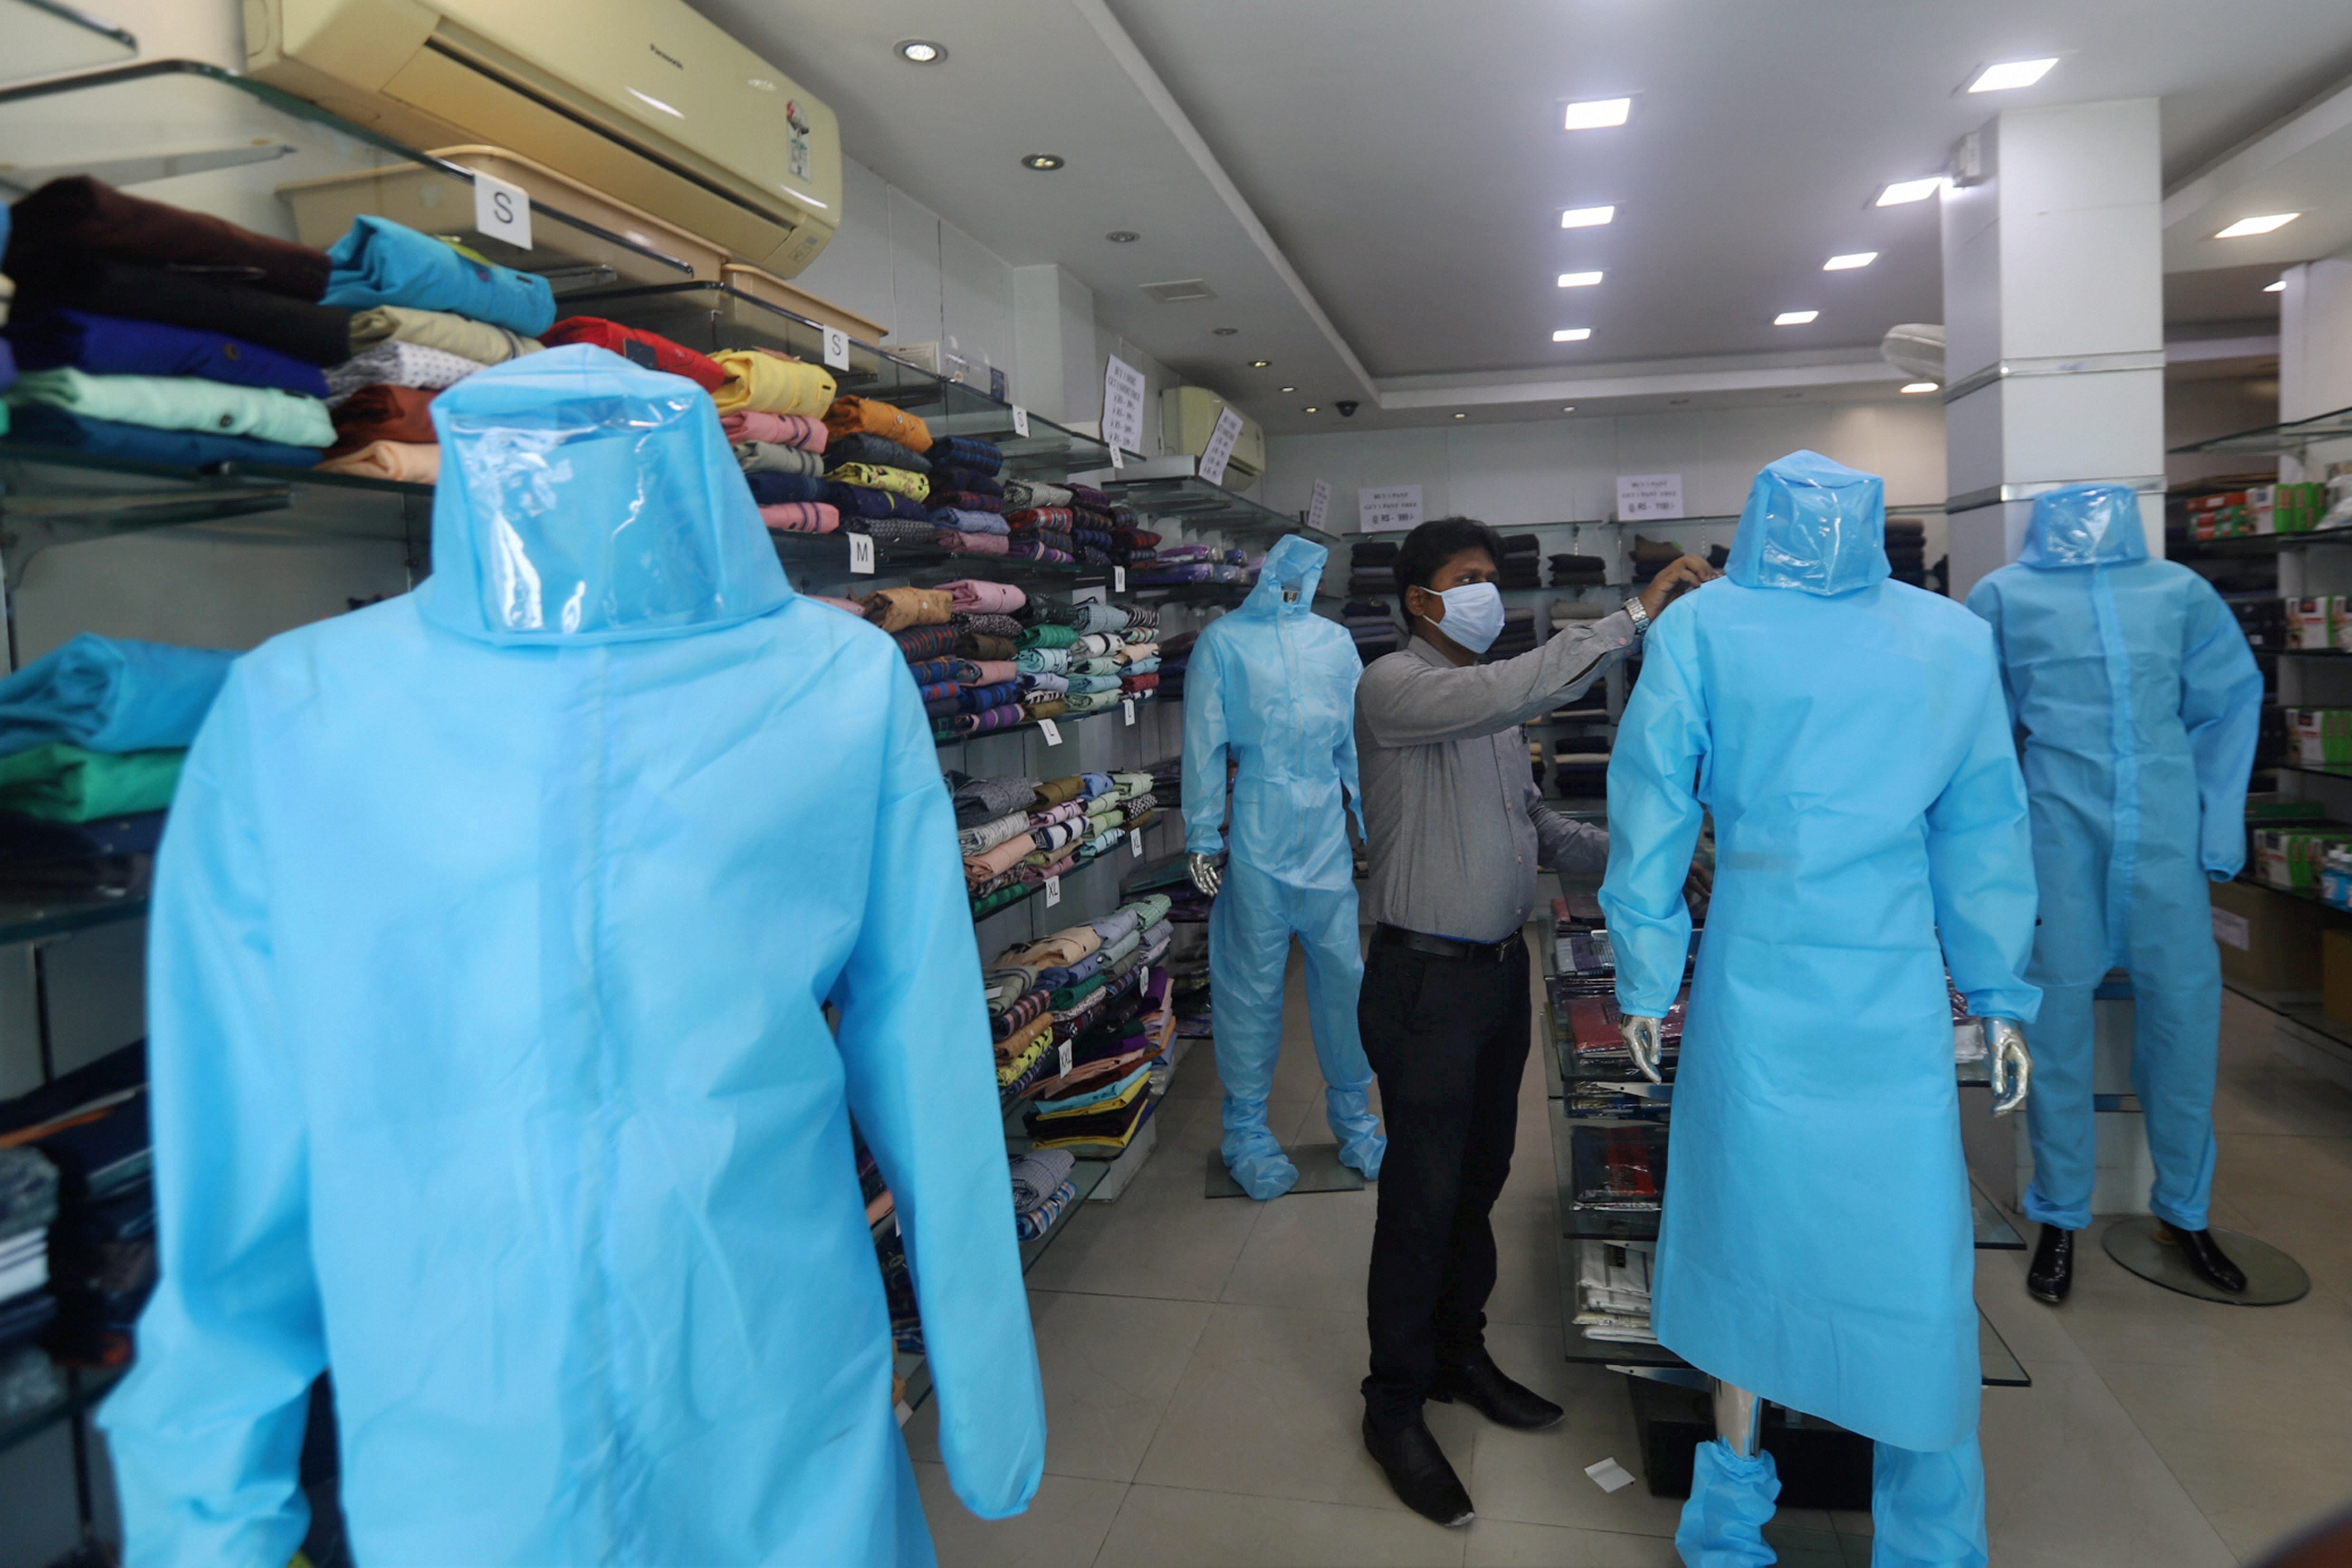 A shopkeeper puts a protective suit on a mannequin for sale at a garment shop after the government eased restrictions during the nationwide lockdown, in Chennai Thursday, May 28, 2020.